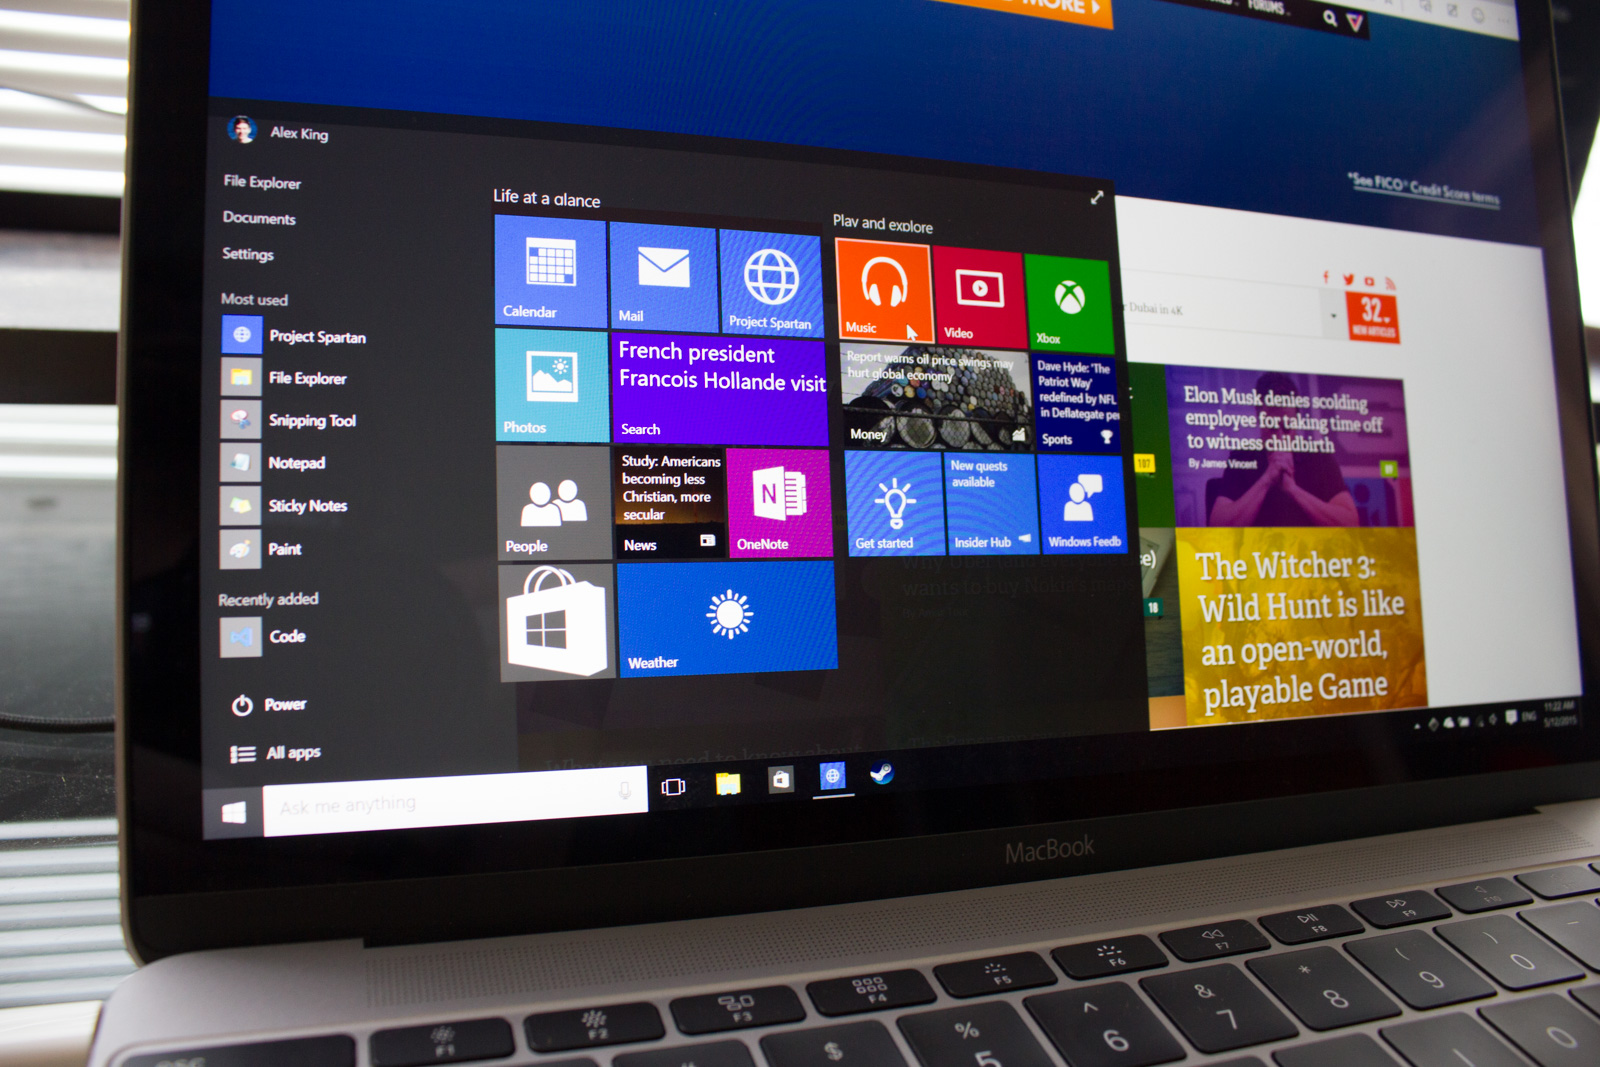 Testing The 12-inch MacBook's Performance with Windows 10 - Alex